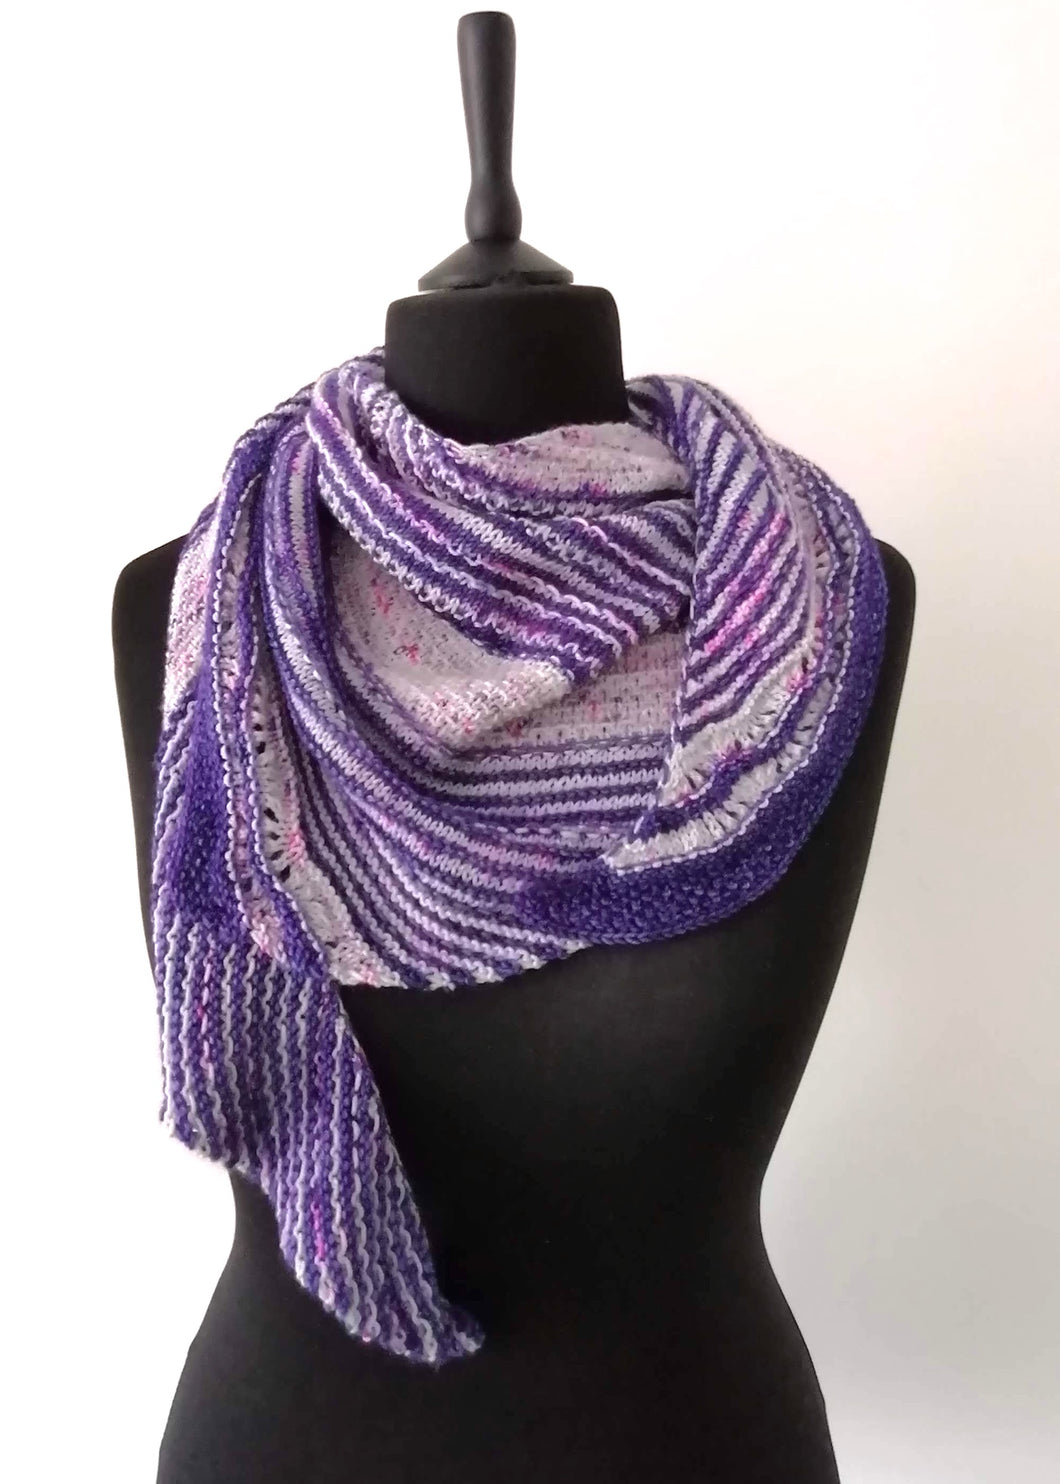 Hand knitted purple and grey shawl